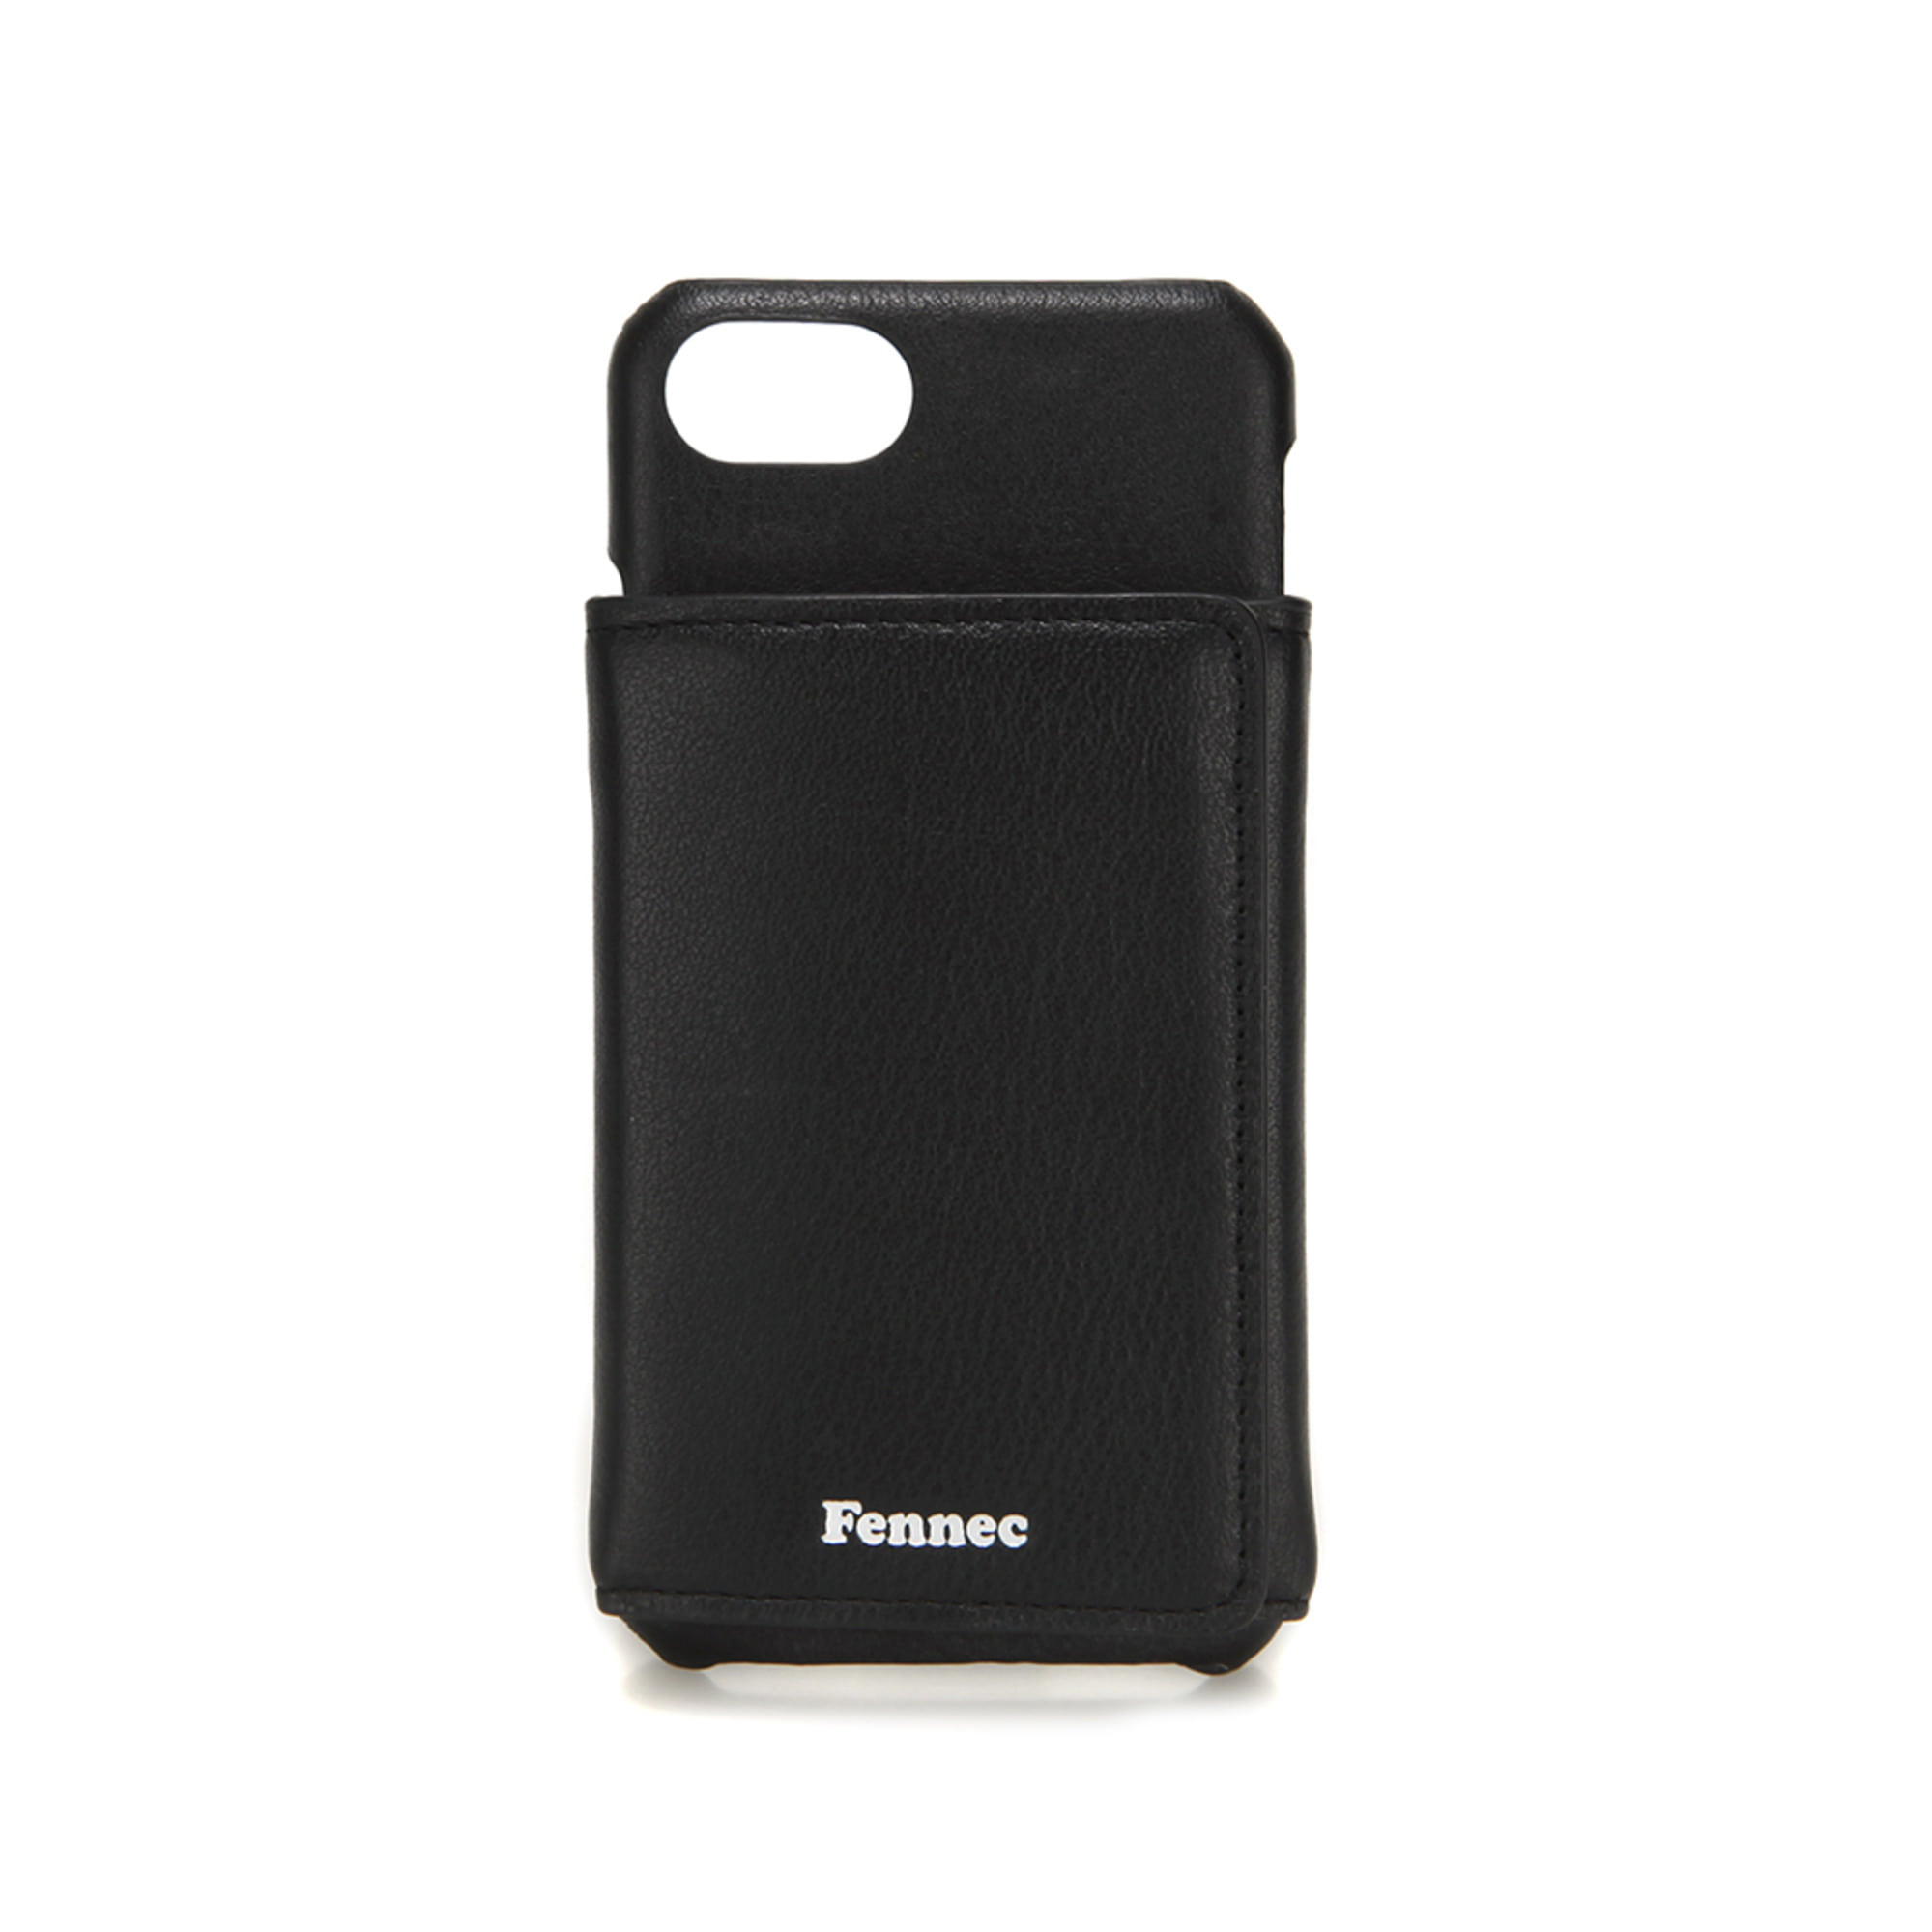 [DISCONTINUE] LEATHER iPHONE 7/8 TRIPLE POCKET CASE - BLACK